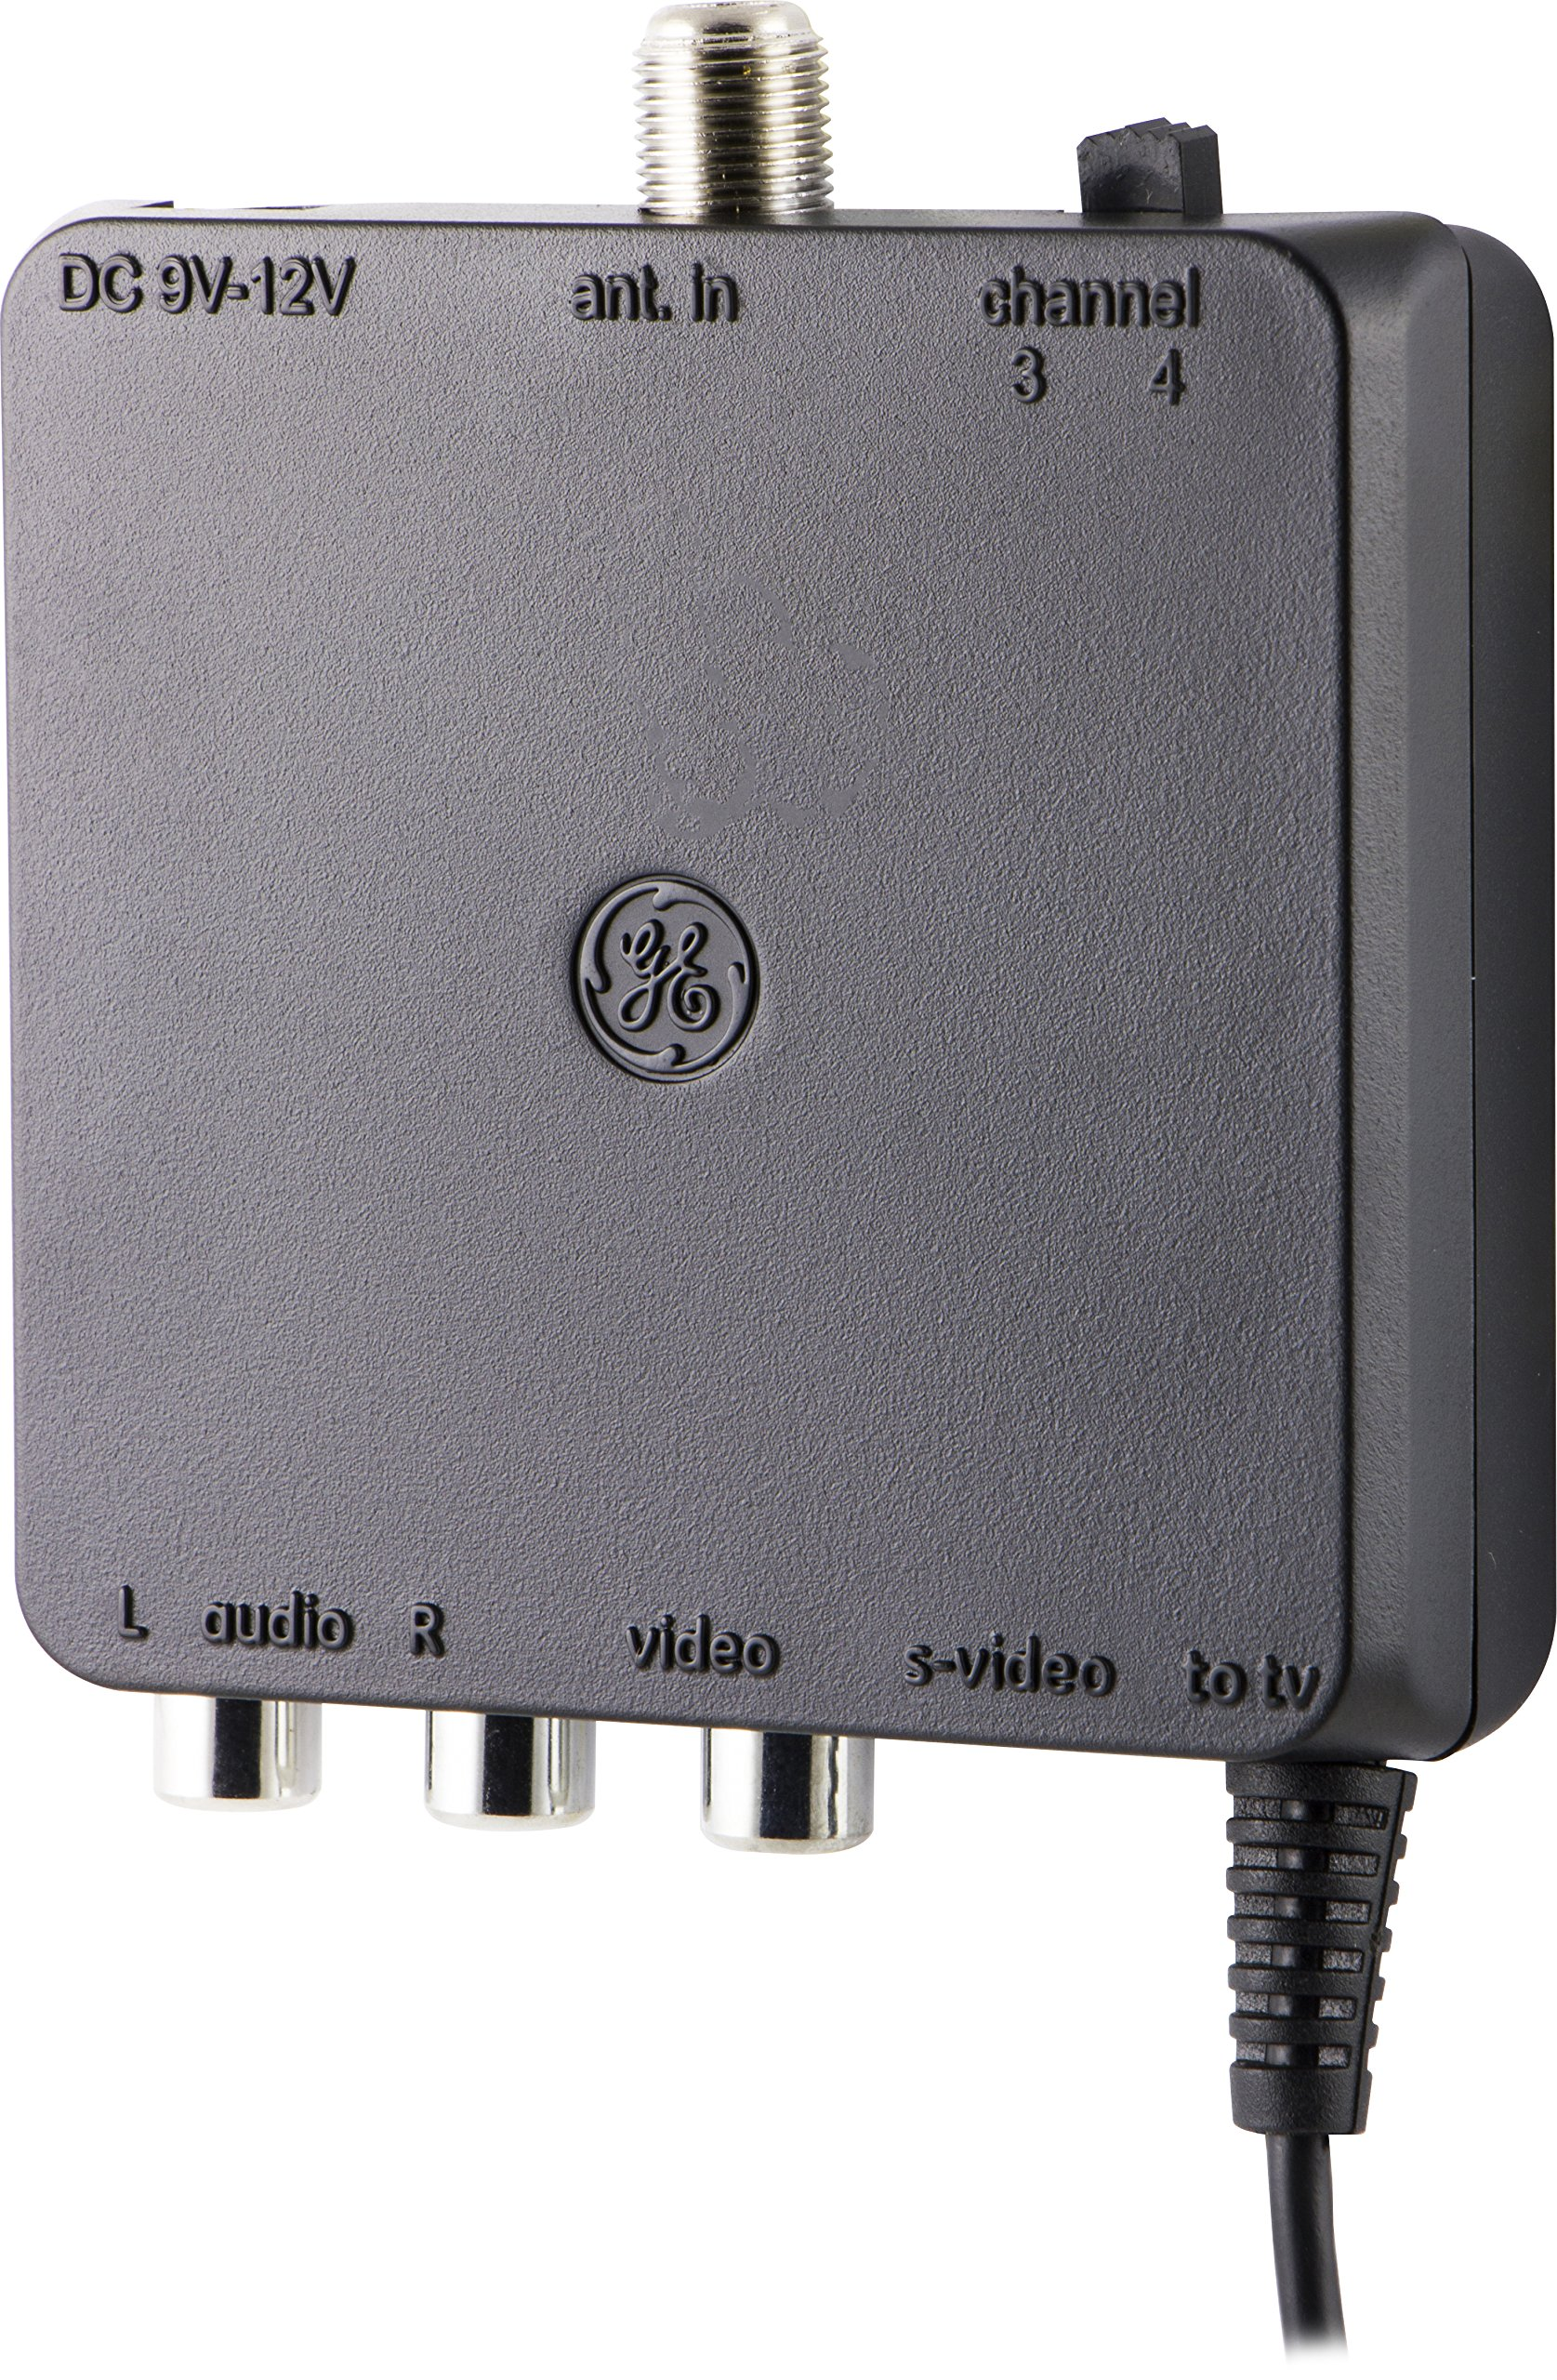 GE 38806 PRO RF Modulator S- Video Converter